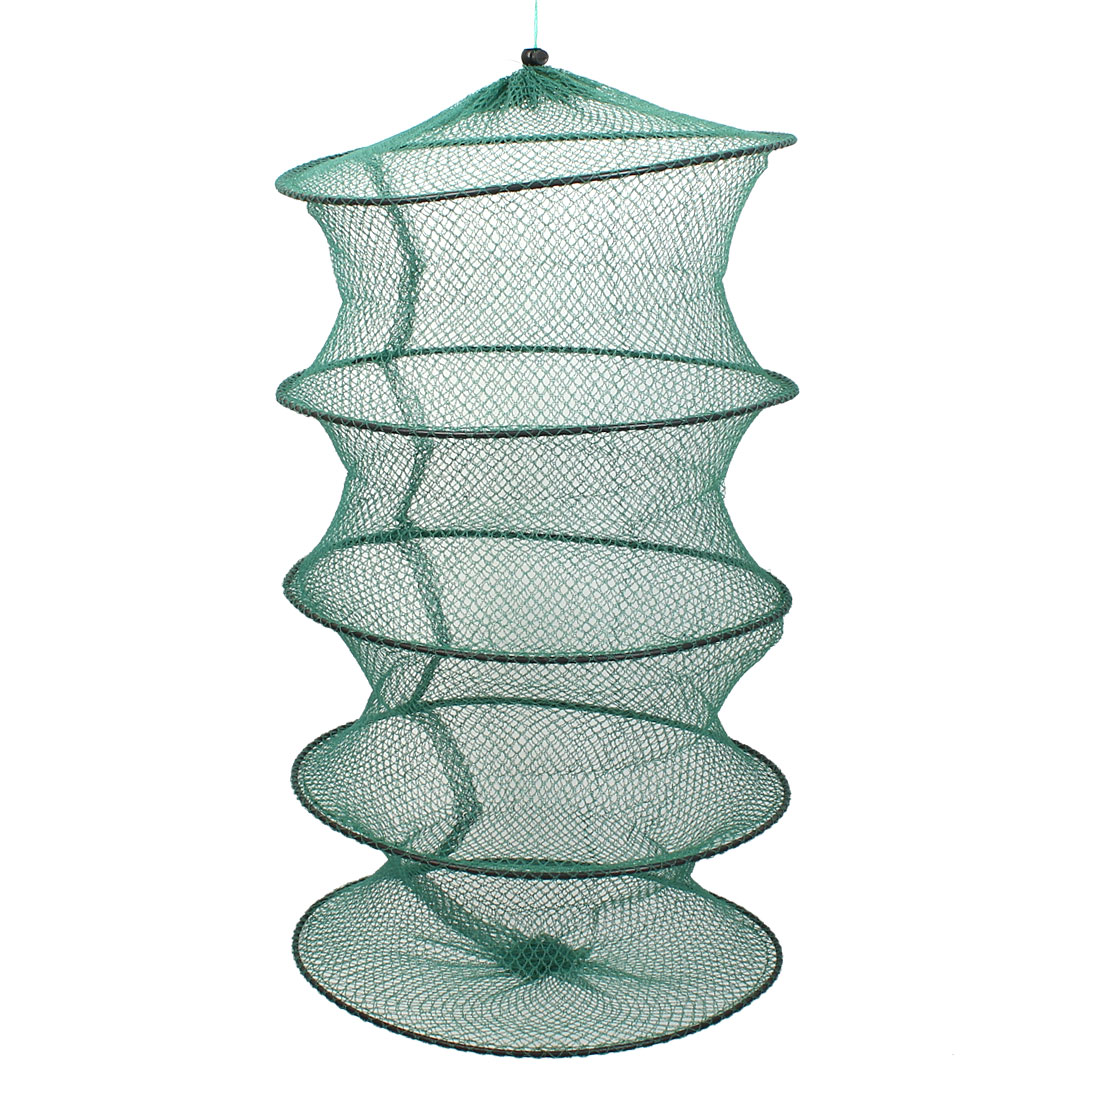 Crab Crawfish Shrimp Fish Cage 4 Sections Foldable Fishing Keep Net Green